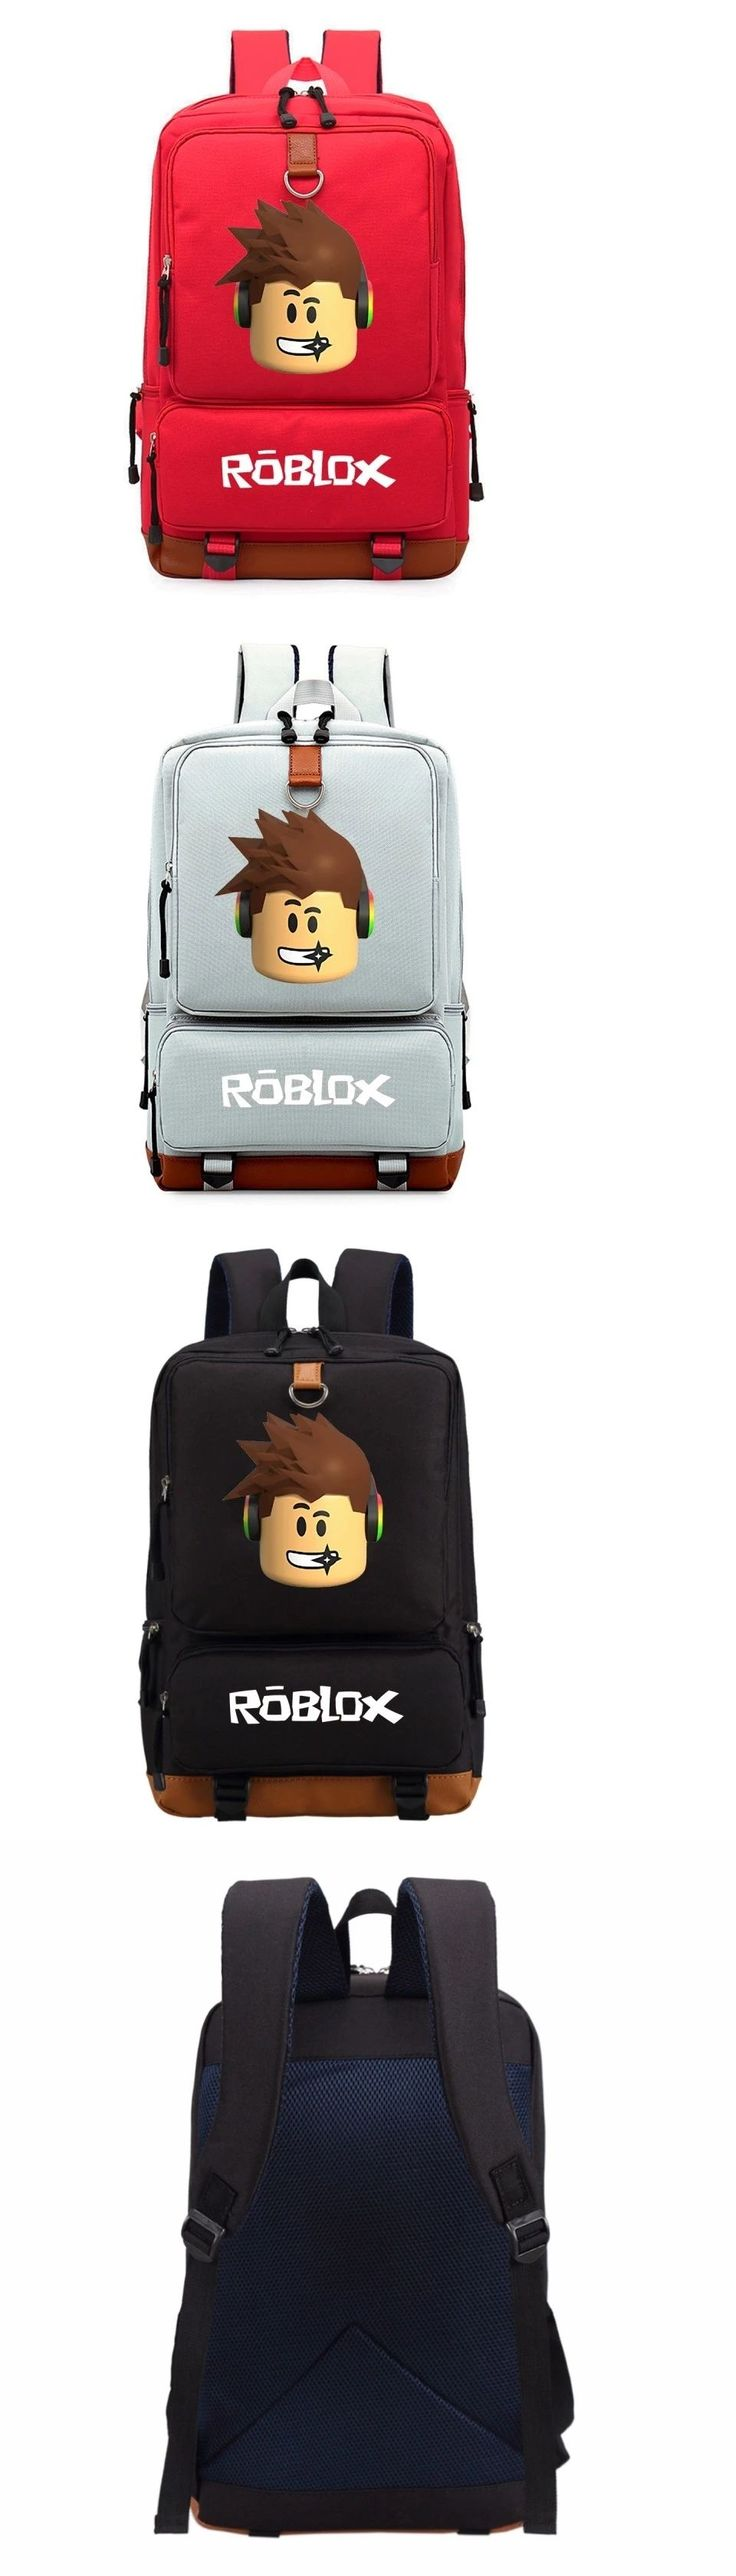 Backpacks and Bags 57882: Roblox Back To School Backpack Best Game Ps4 Xbox -> BUY IT NOW ONLY: $39.7 on eBay!